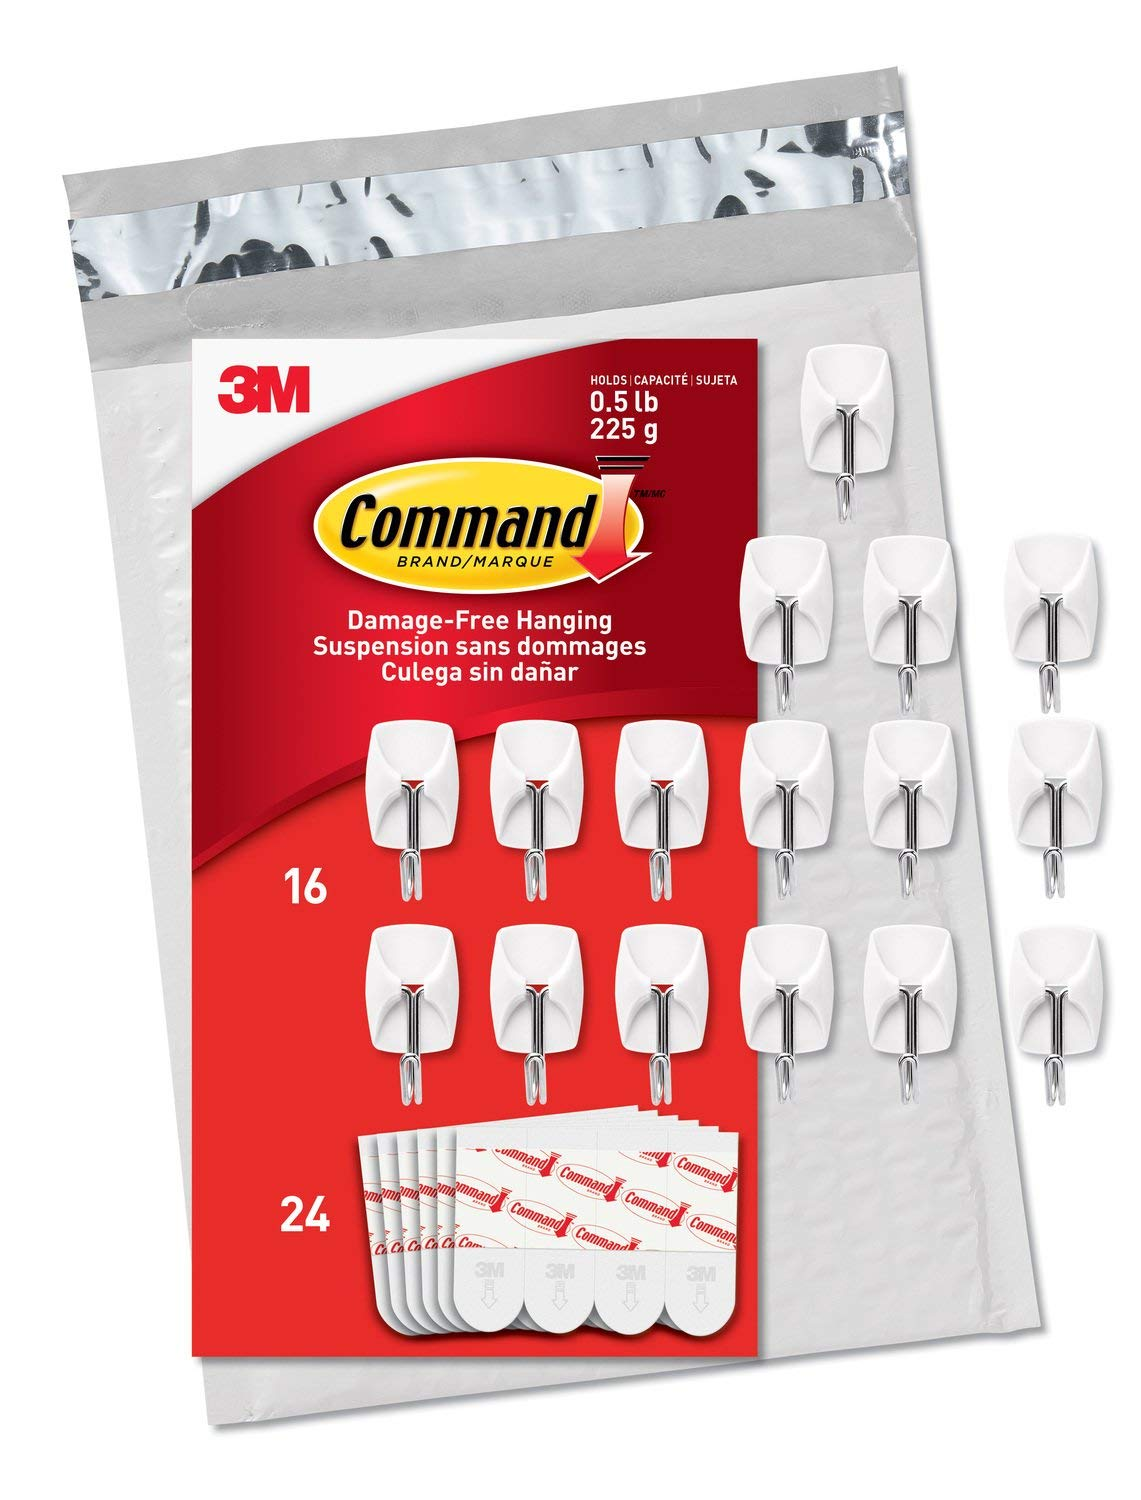 Command by 3M Damage-Free Small Wire Hooks MFCCG, White, Holds 0.5 lbs, Hang Without Tools, Value Pack, Easy to Open Packaging, 56 Hooks